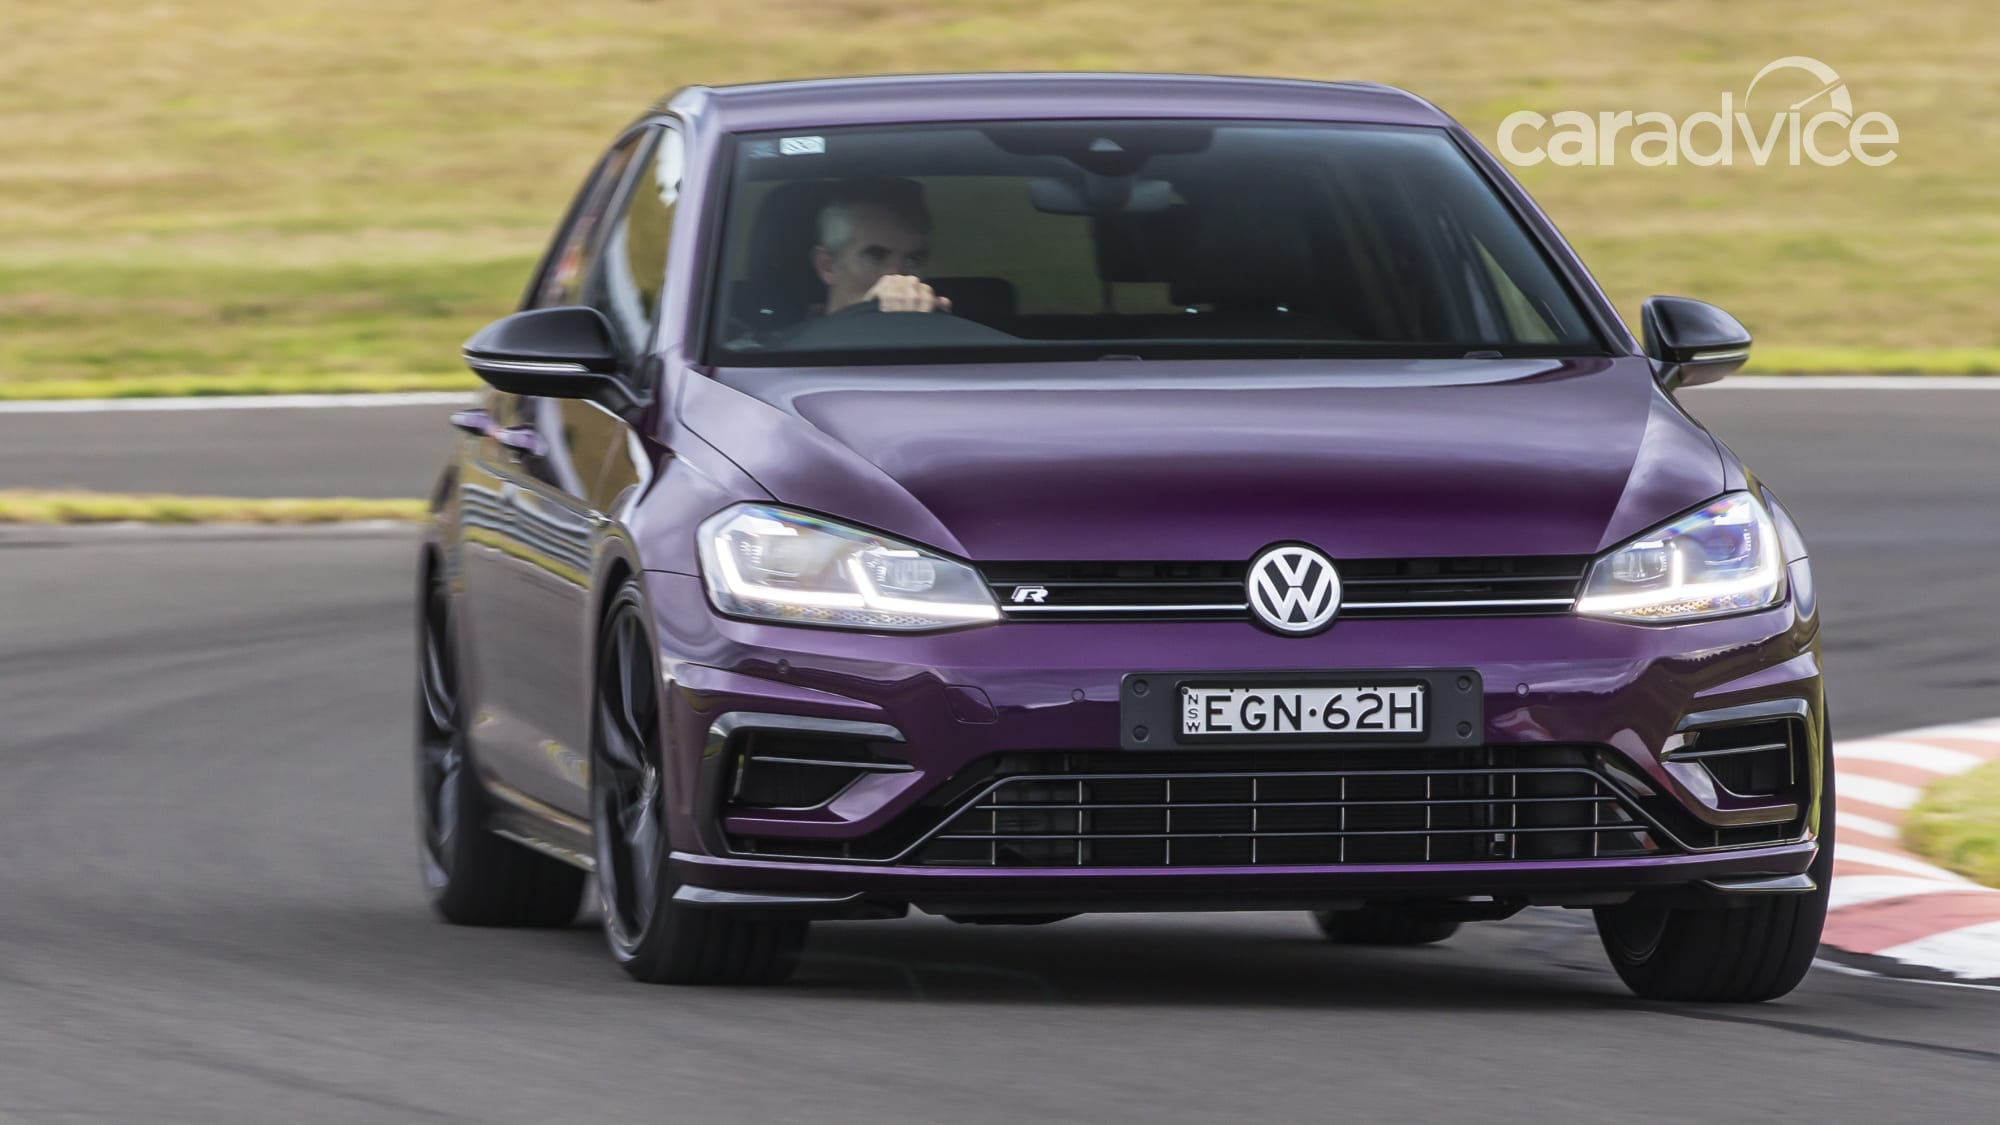 2020 volkswagen golf r final edition review | caradvice